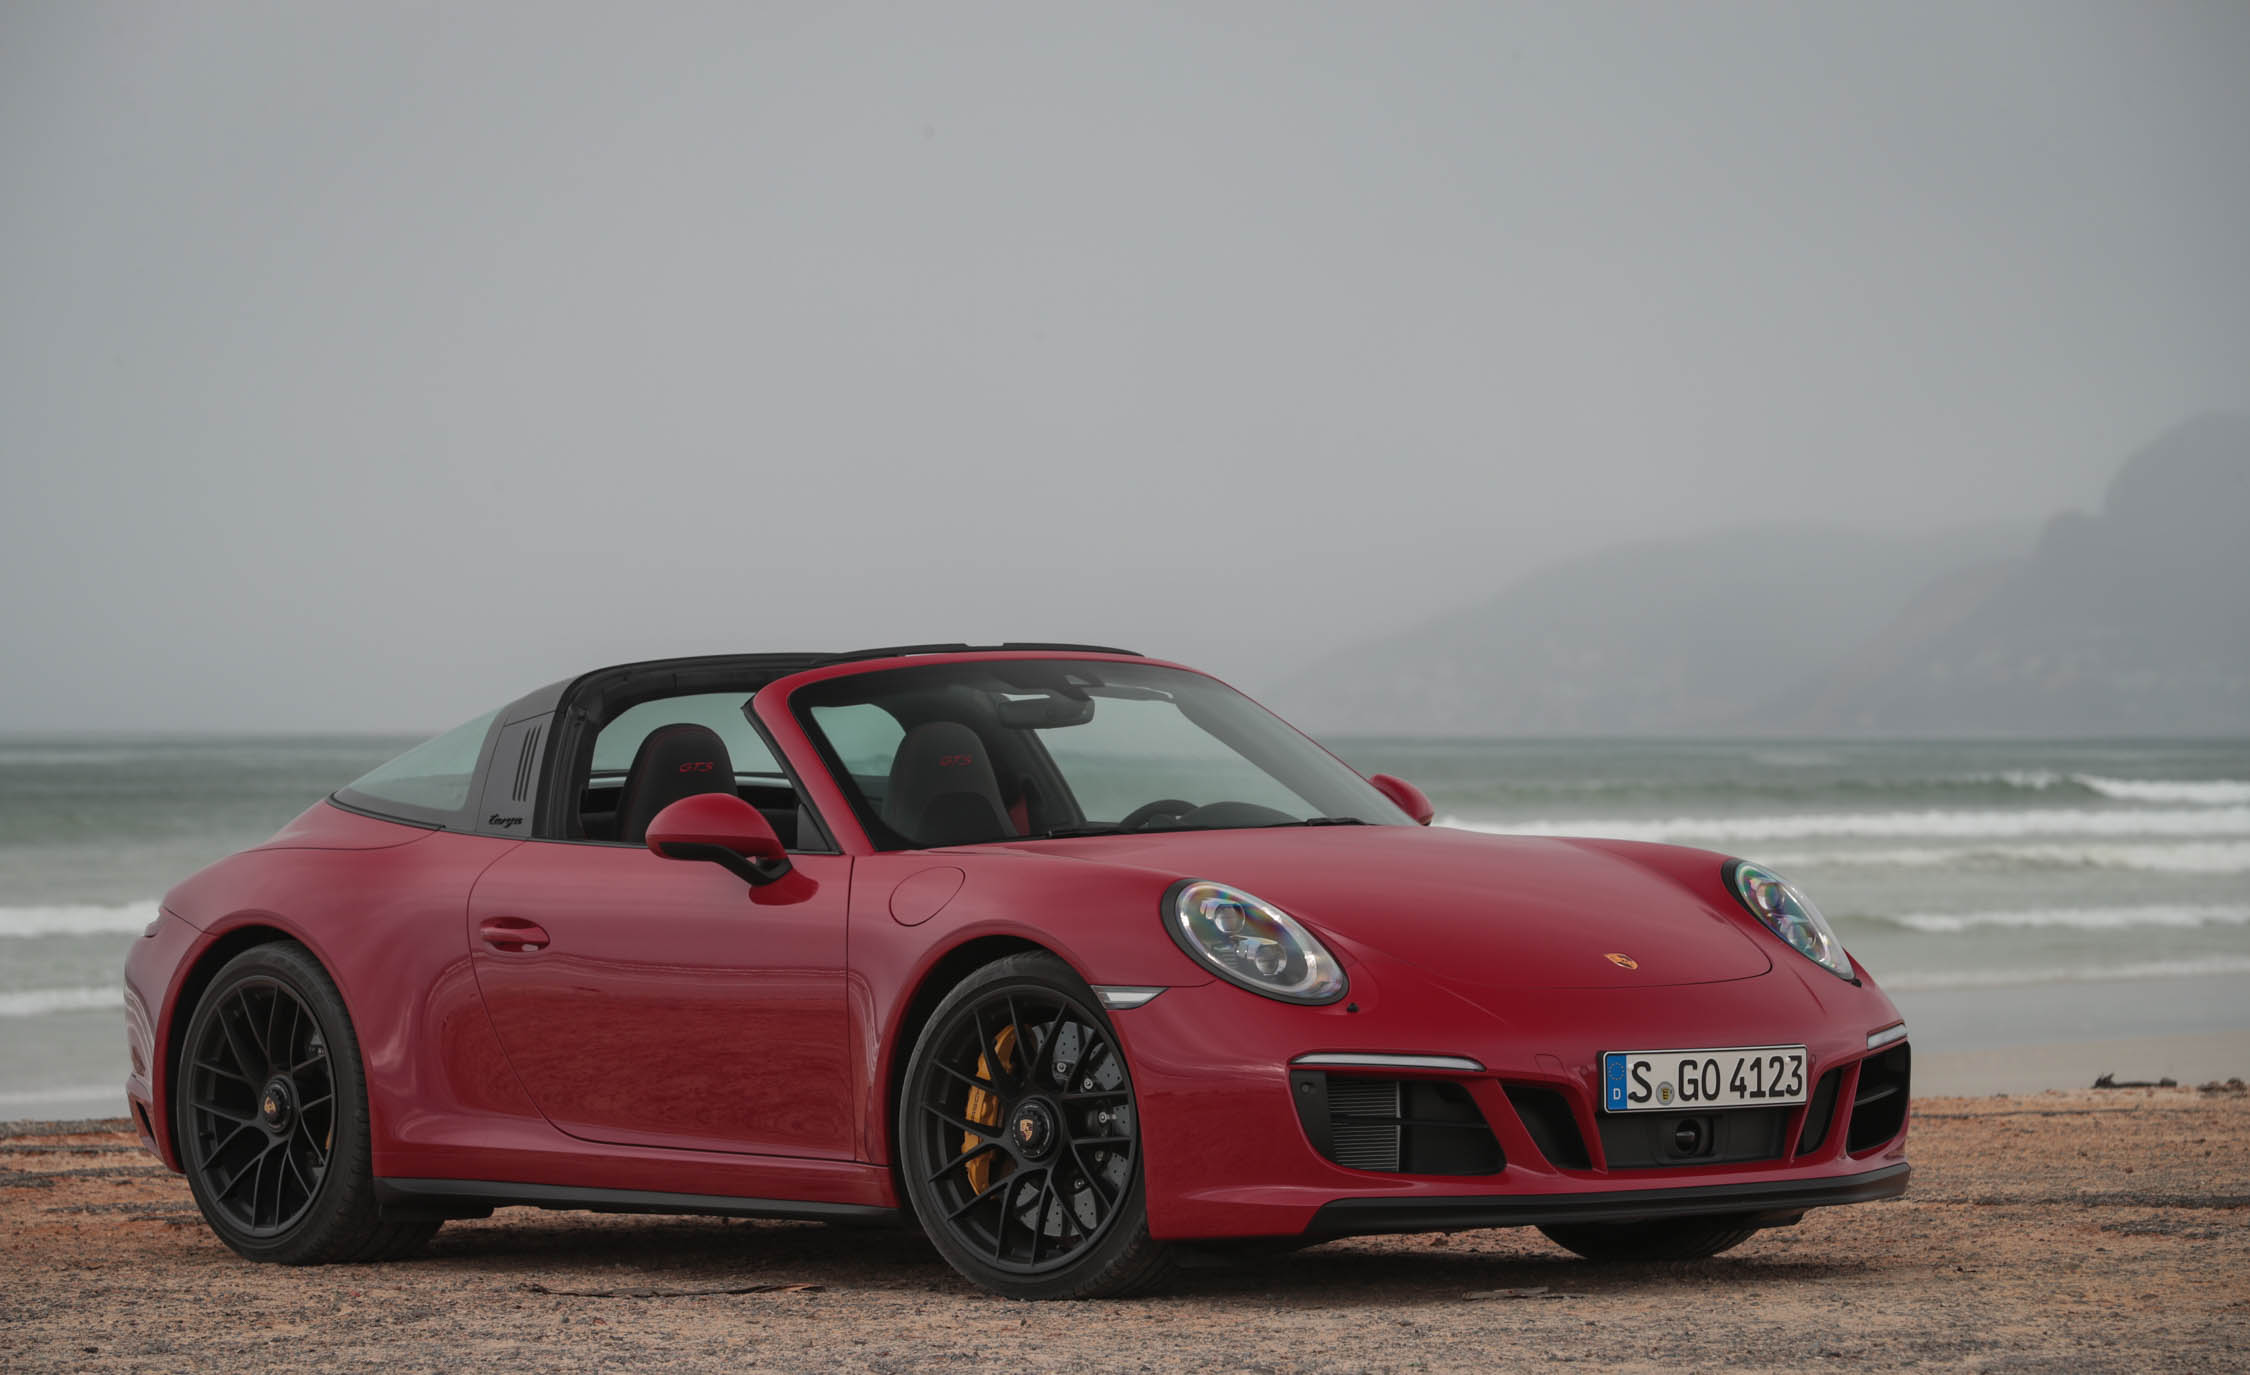 2017 Porsche 911 Targa 4 GTS Red Exterior (Photo 76 of 97)